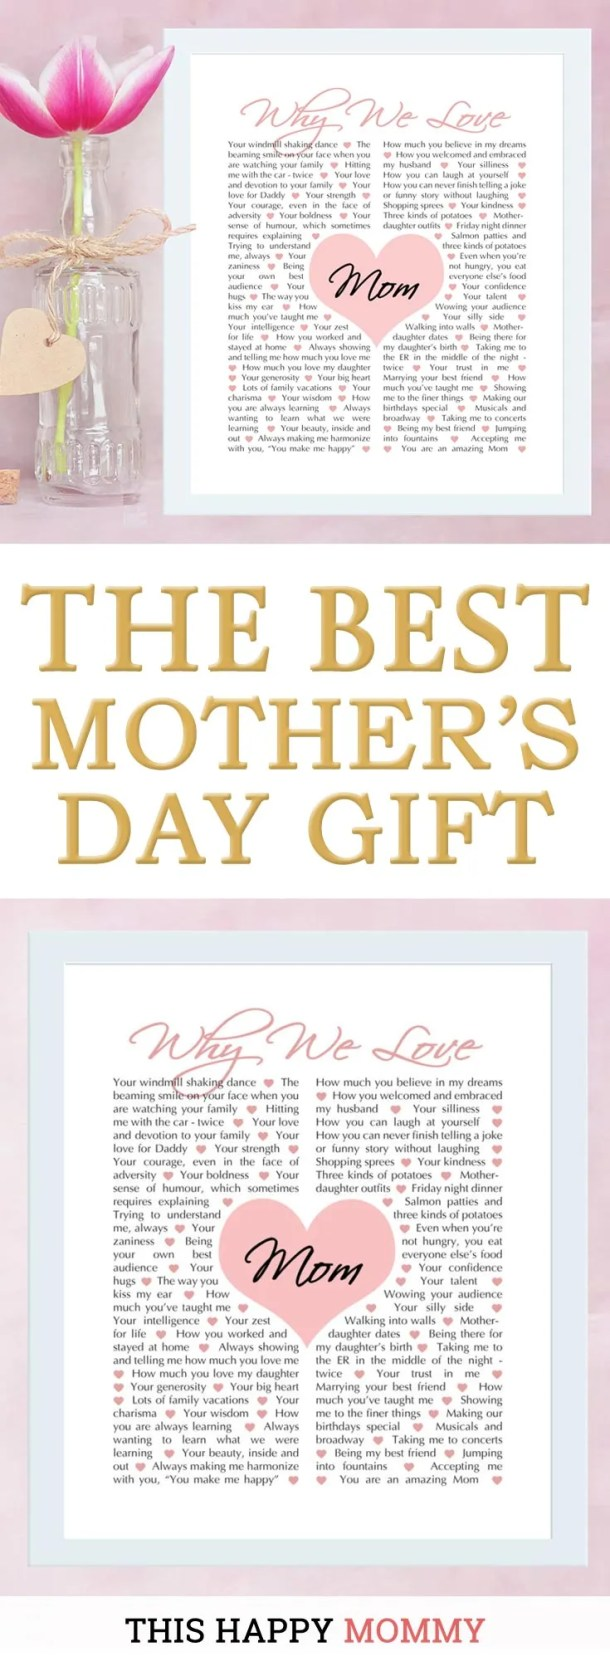 Mom loves you unconditionally. Give mom a gift that tells her all the reasons you love her with Why We Love Mom. | why we love mom gift |mother's day gift |birthday gift for mom | Easy DIY gifts | Unique DIY gifts | creative DIY gifts | birthday party gift for adults | #gifts #diy #mothersday #birthdaygift | thishappymommy.com